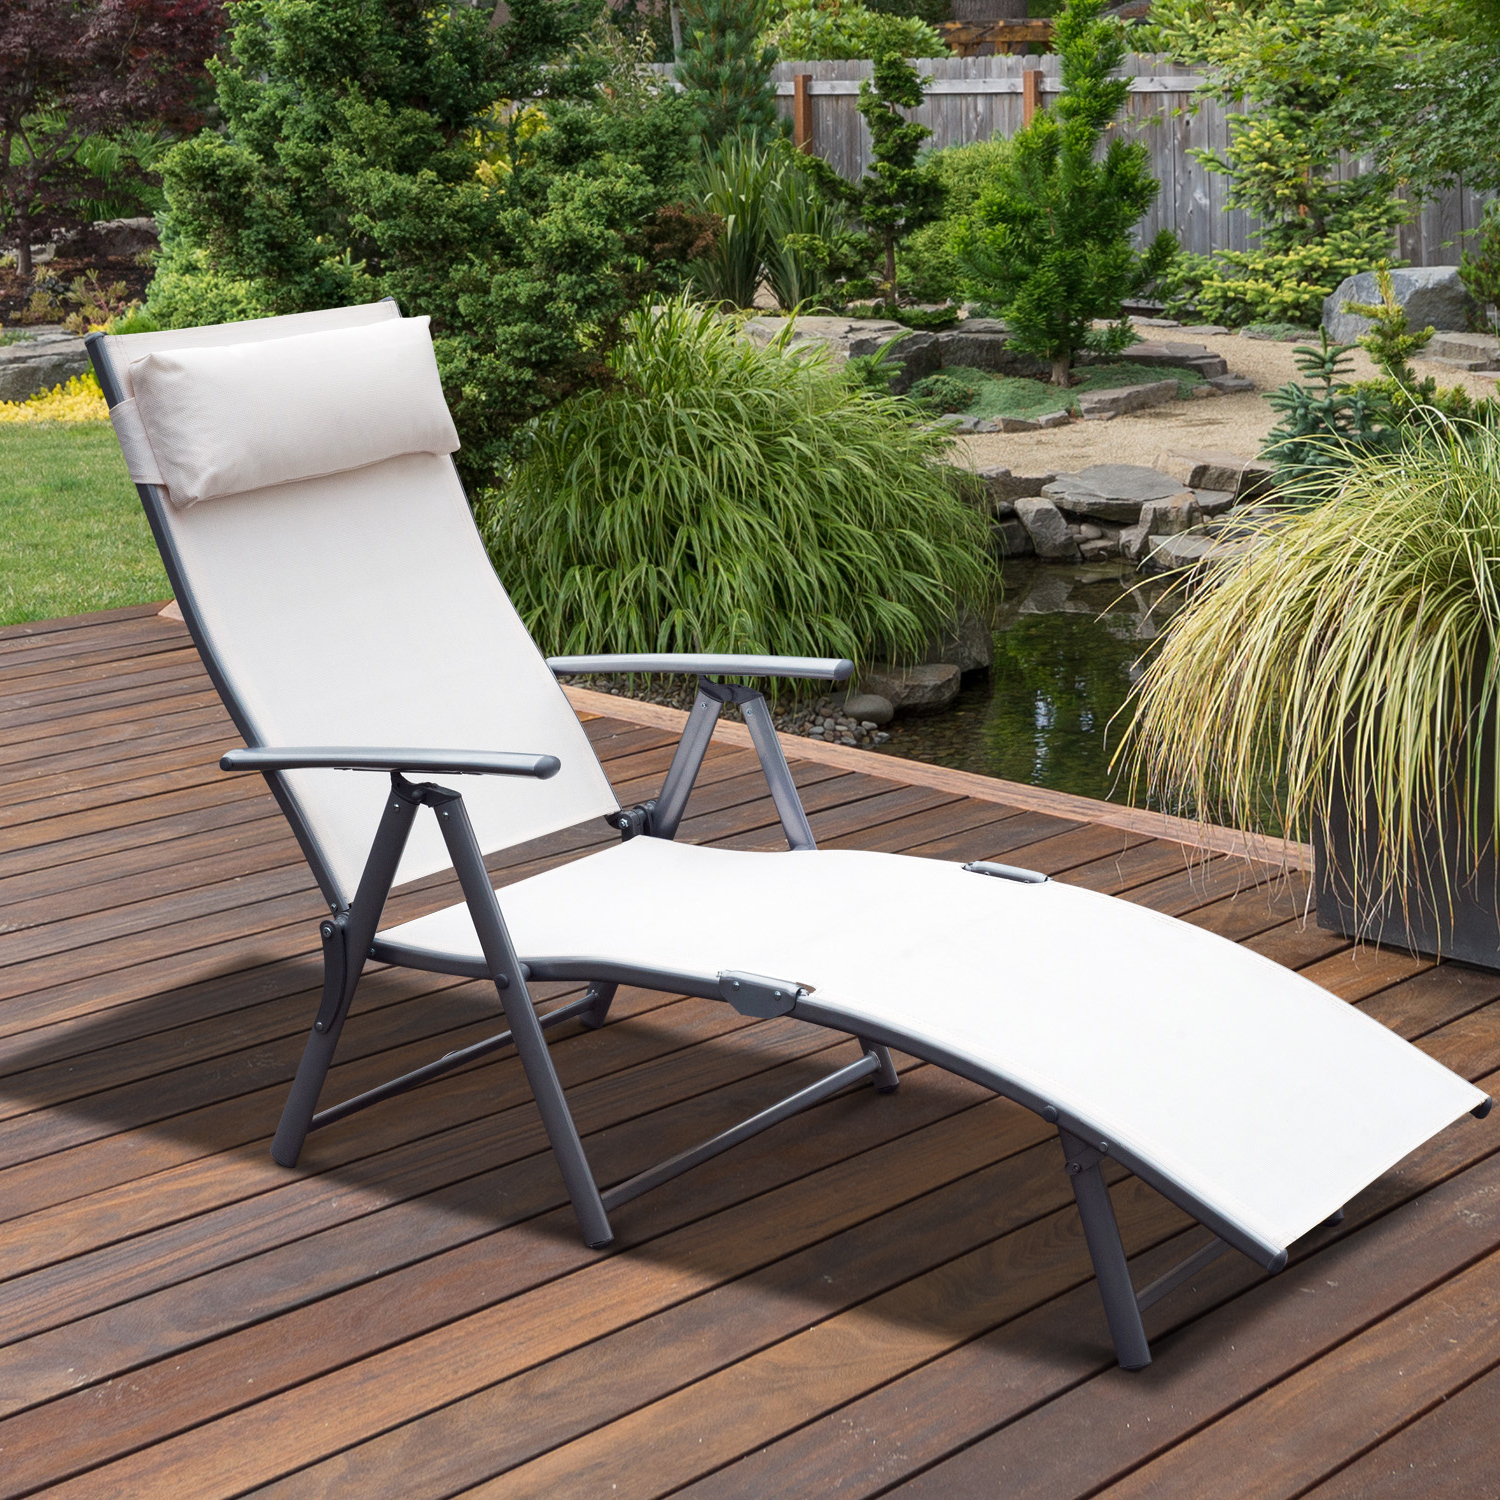 Favorite Details About Outsunny Sling Fabric Patio Reclining Chaise Lounge Garden  Furniture Folding Intended For Steel Sling Fabric Outdoor Folding Chaise Lounges (View 3 of 25)